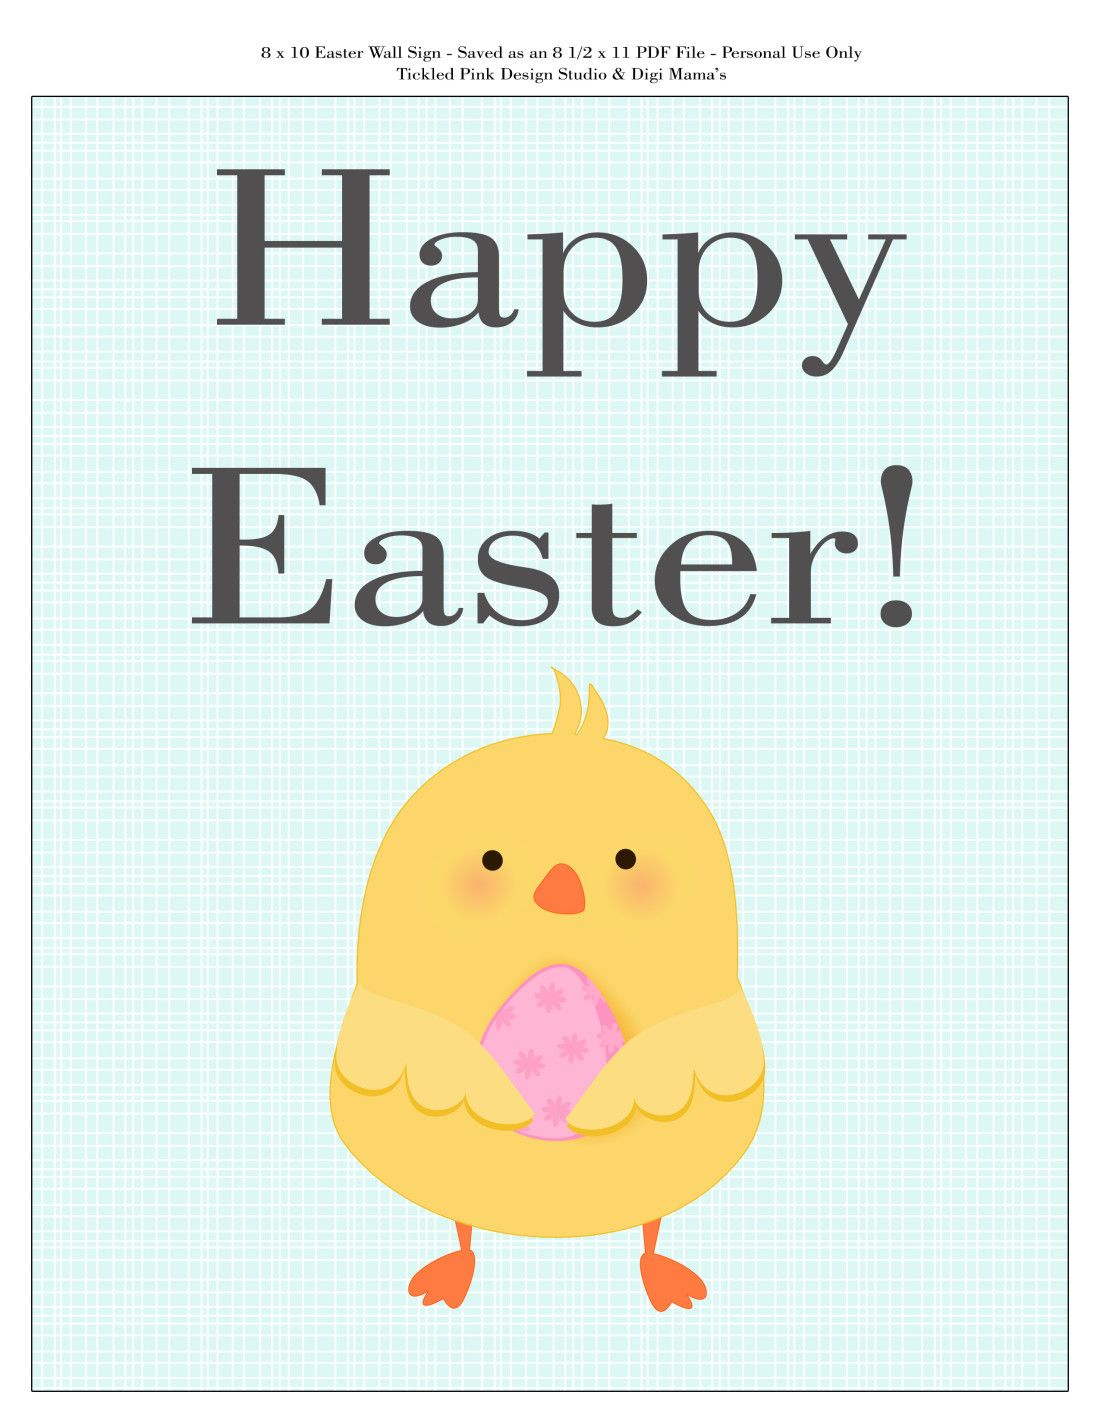 image regarding Happy Easter Sign Printable named Content Easter Signal Printable - FREEBIE! Printables Satisfied